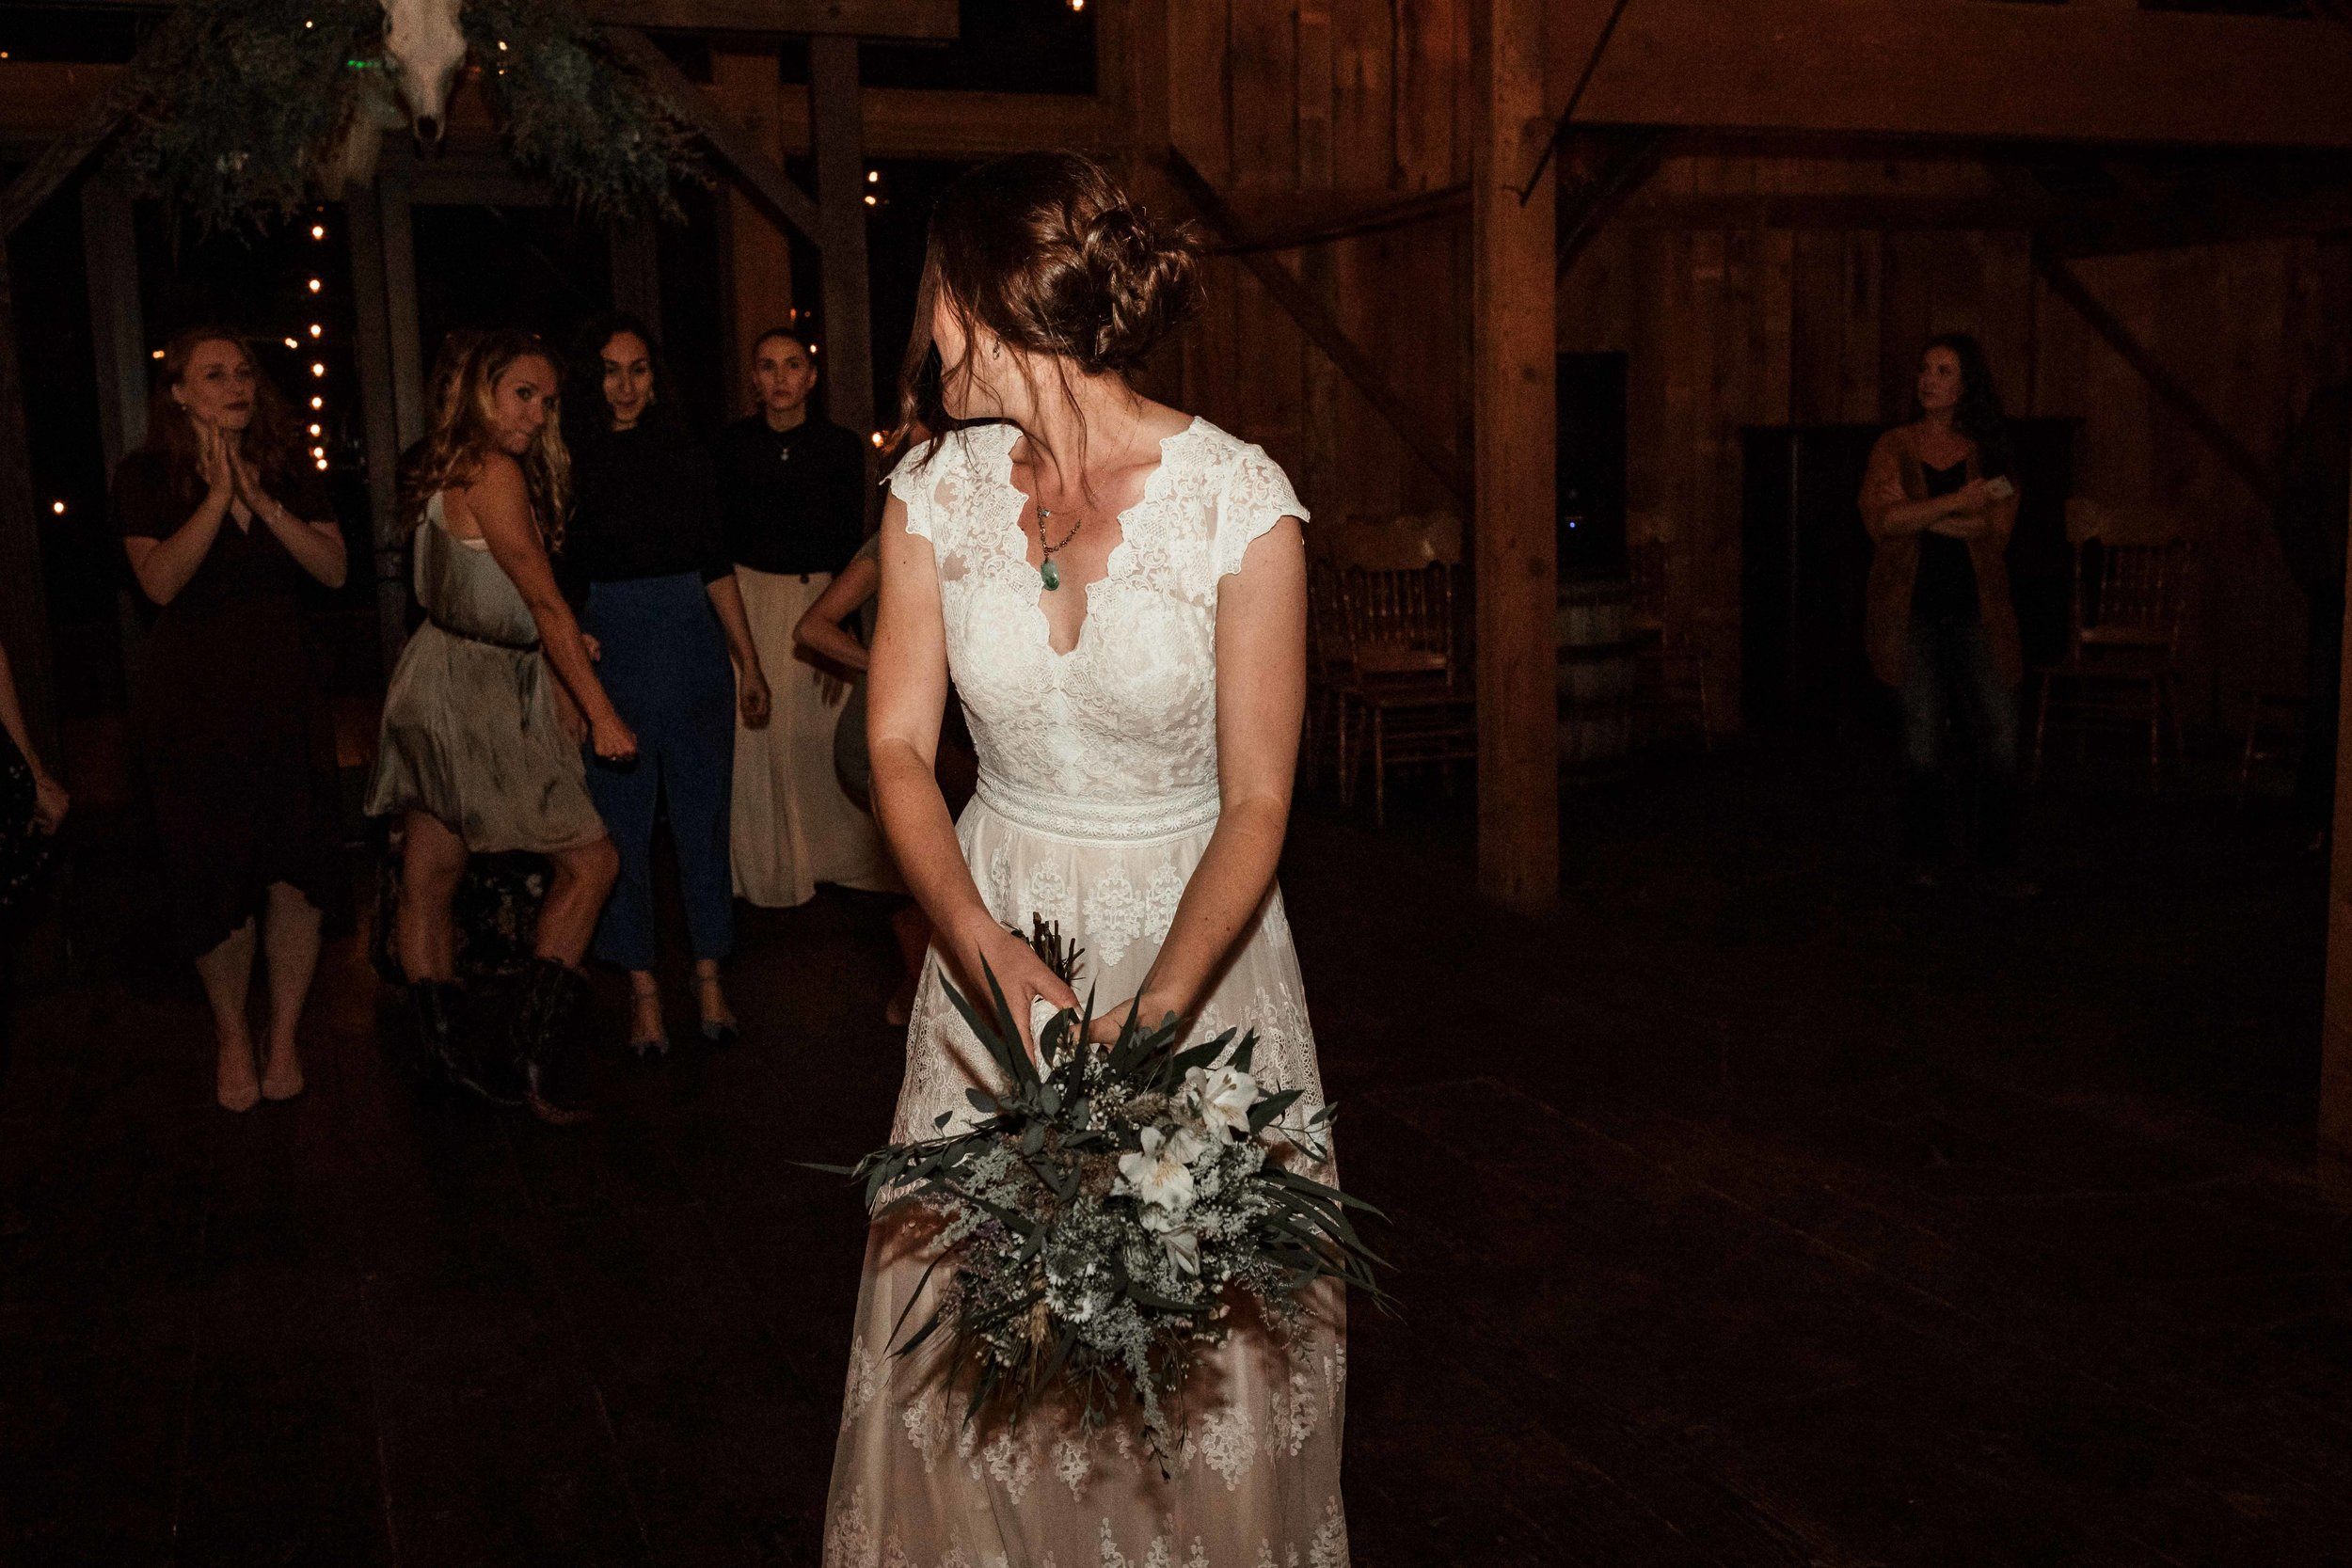 the-cattle-barn-wedding-99.jpg